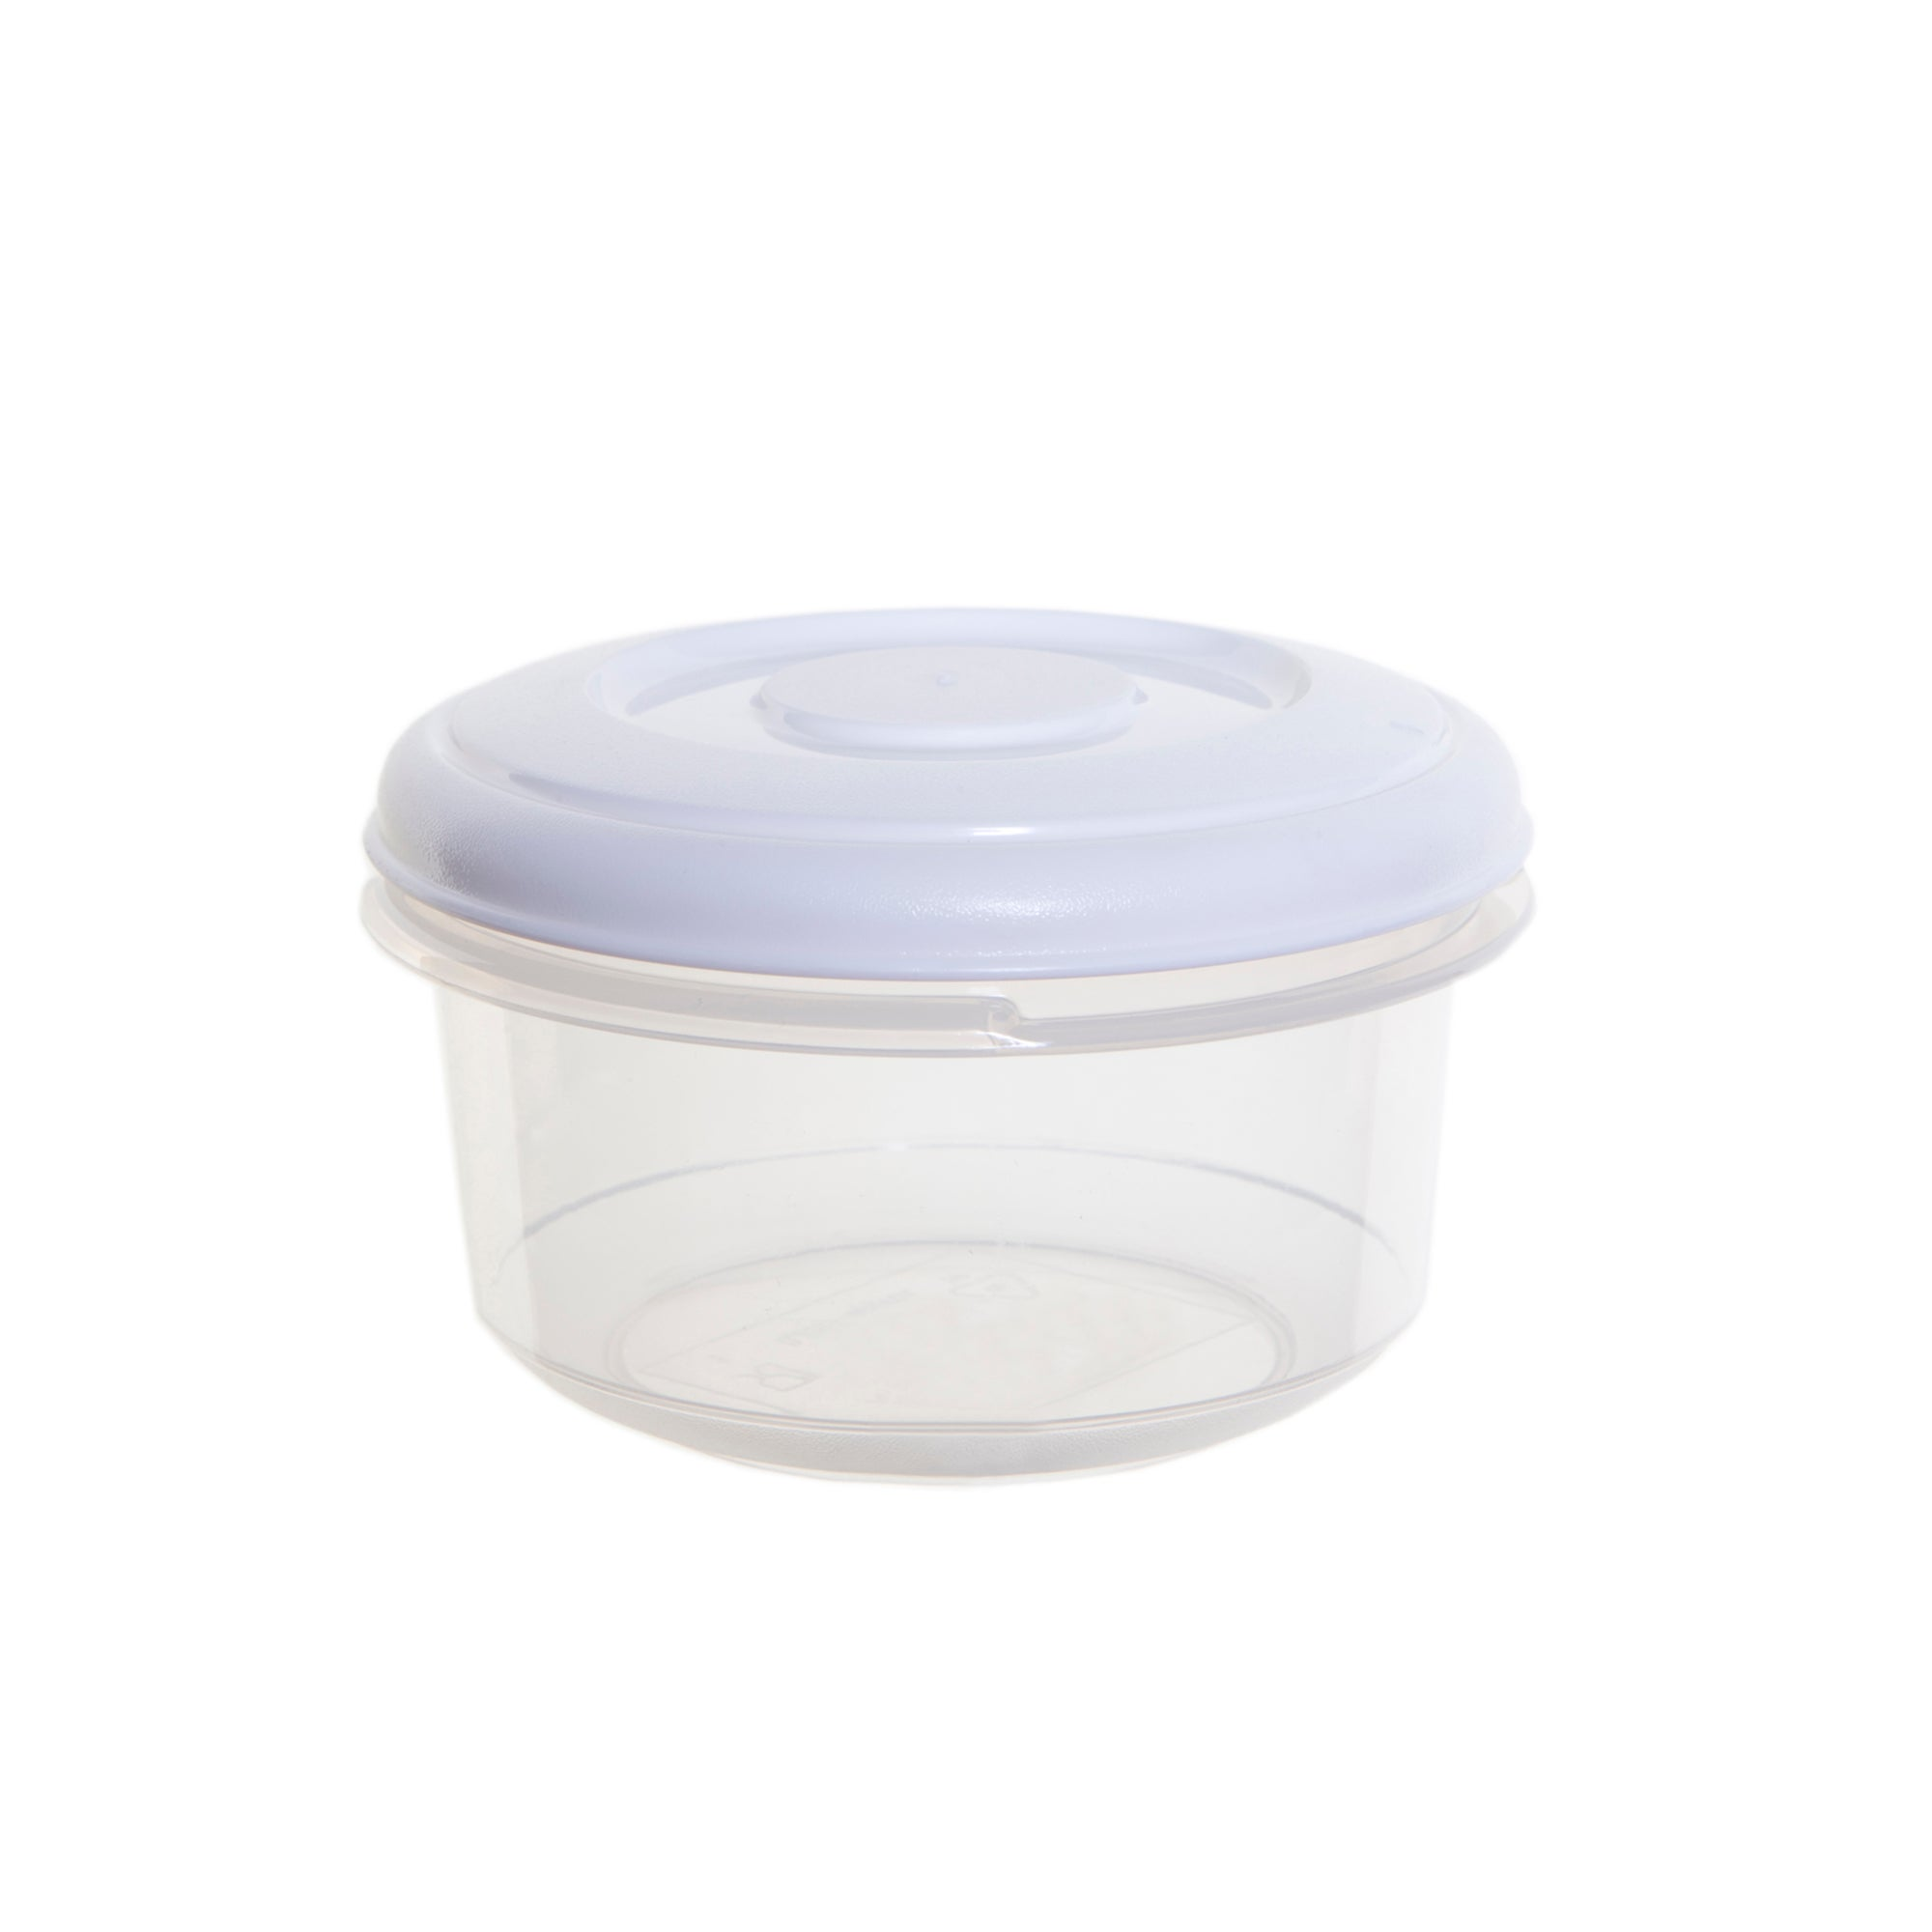 Whitefurze 0.25 Litre Round Food Container